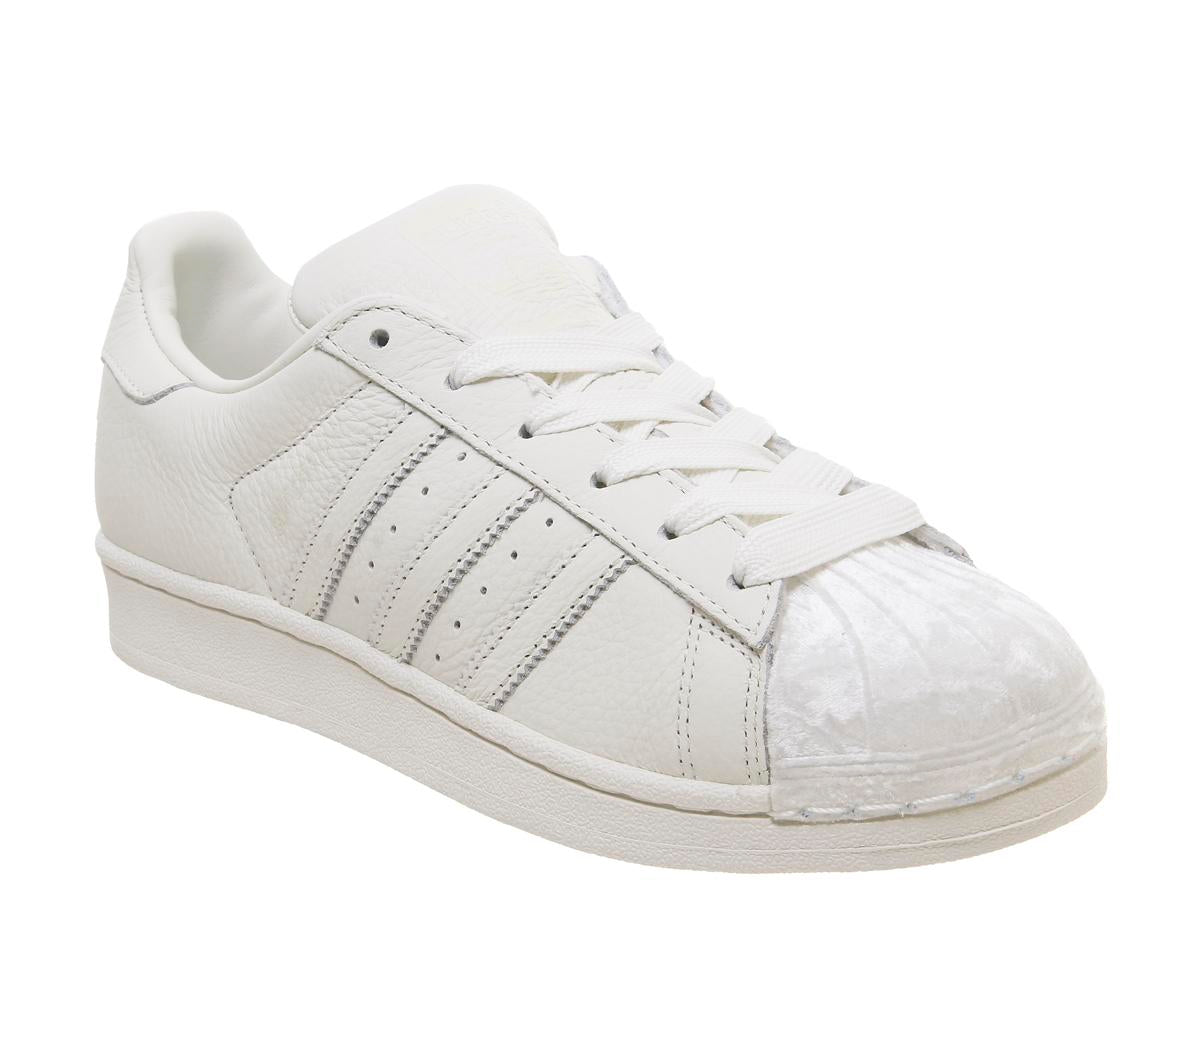 Womens Adidas Superstar 1 Off White Off White Velvet